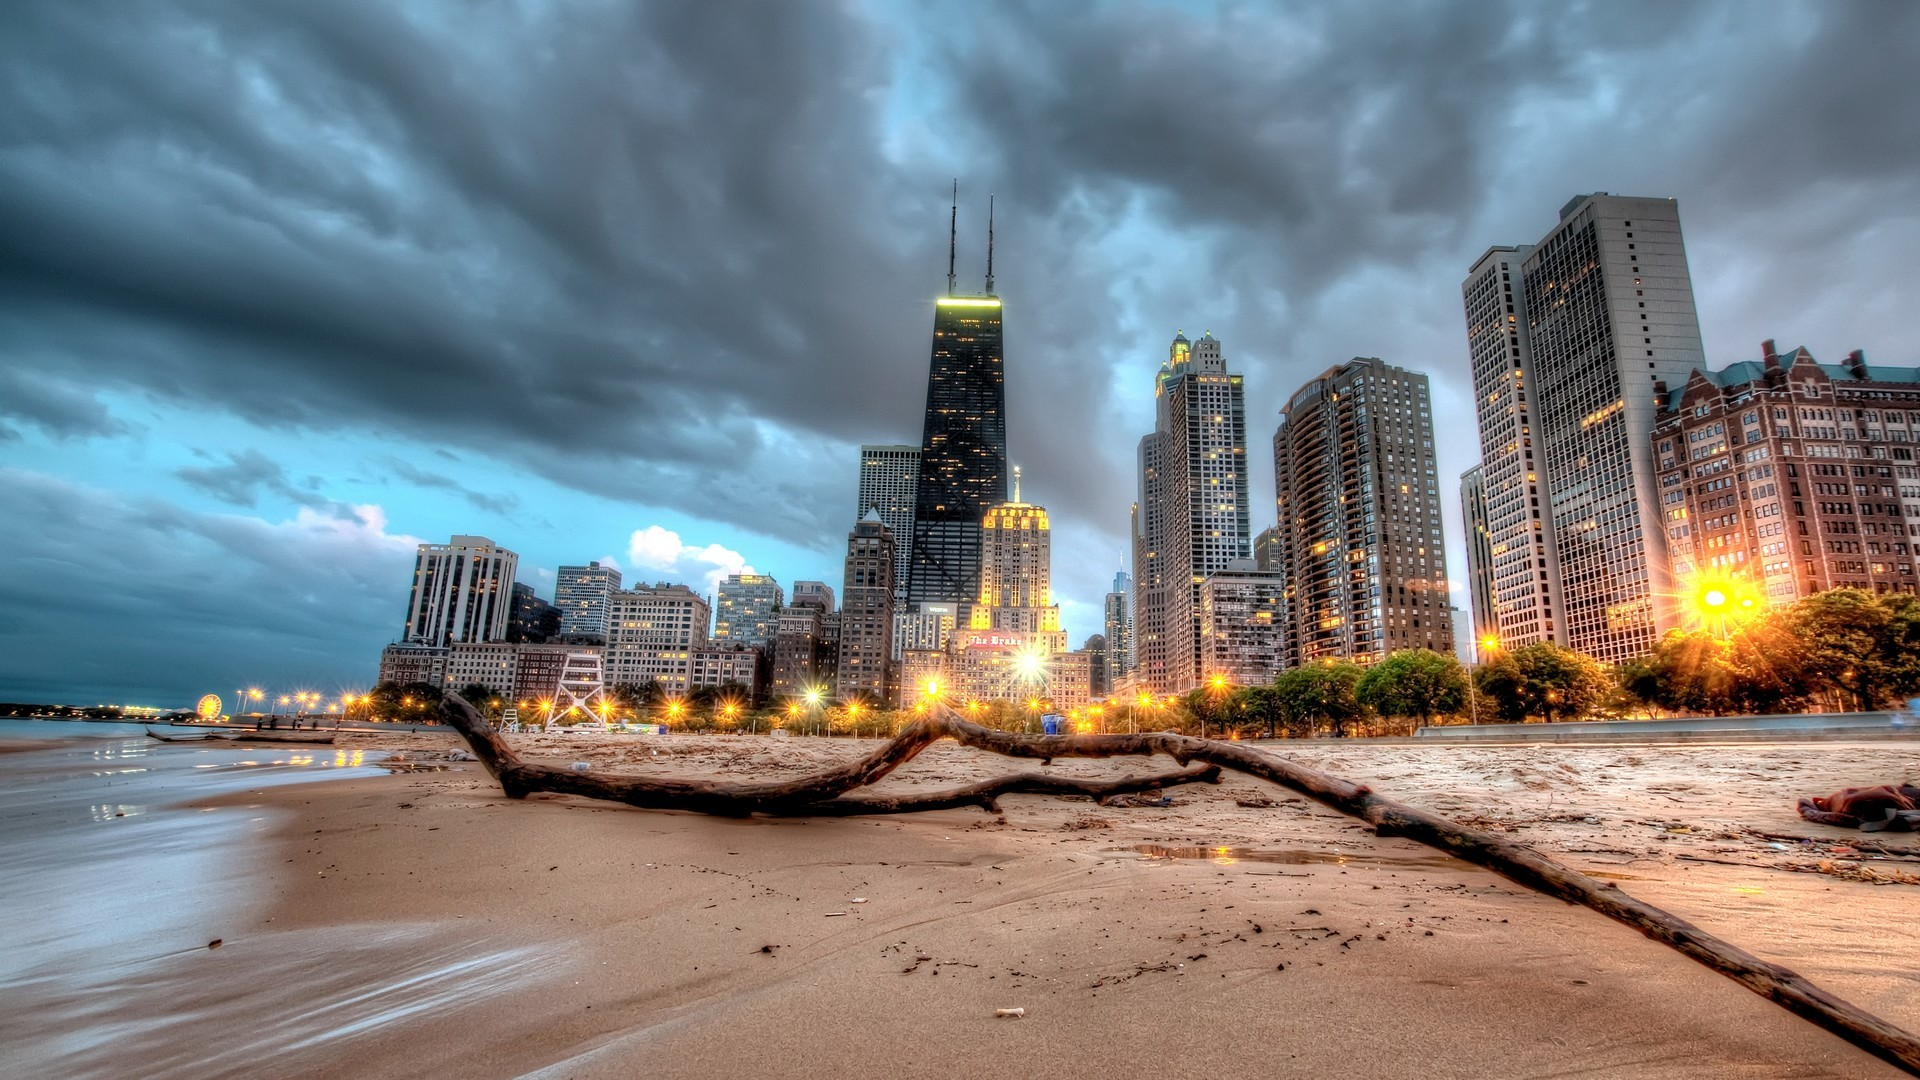 1920x1080 Chicago Hd Wallpaper